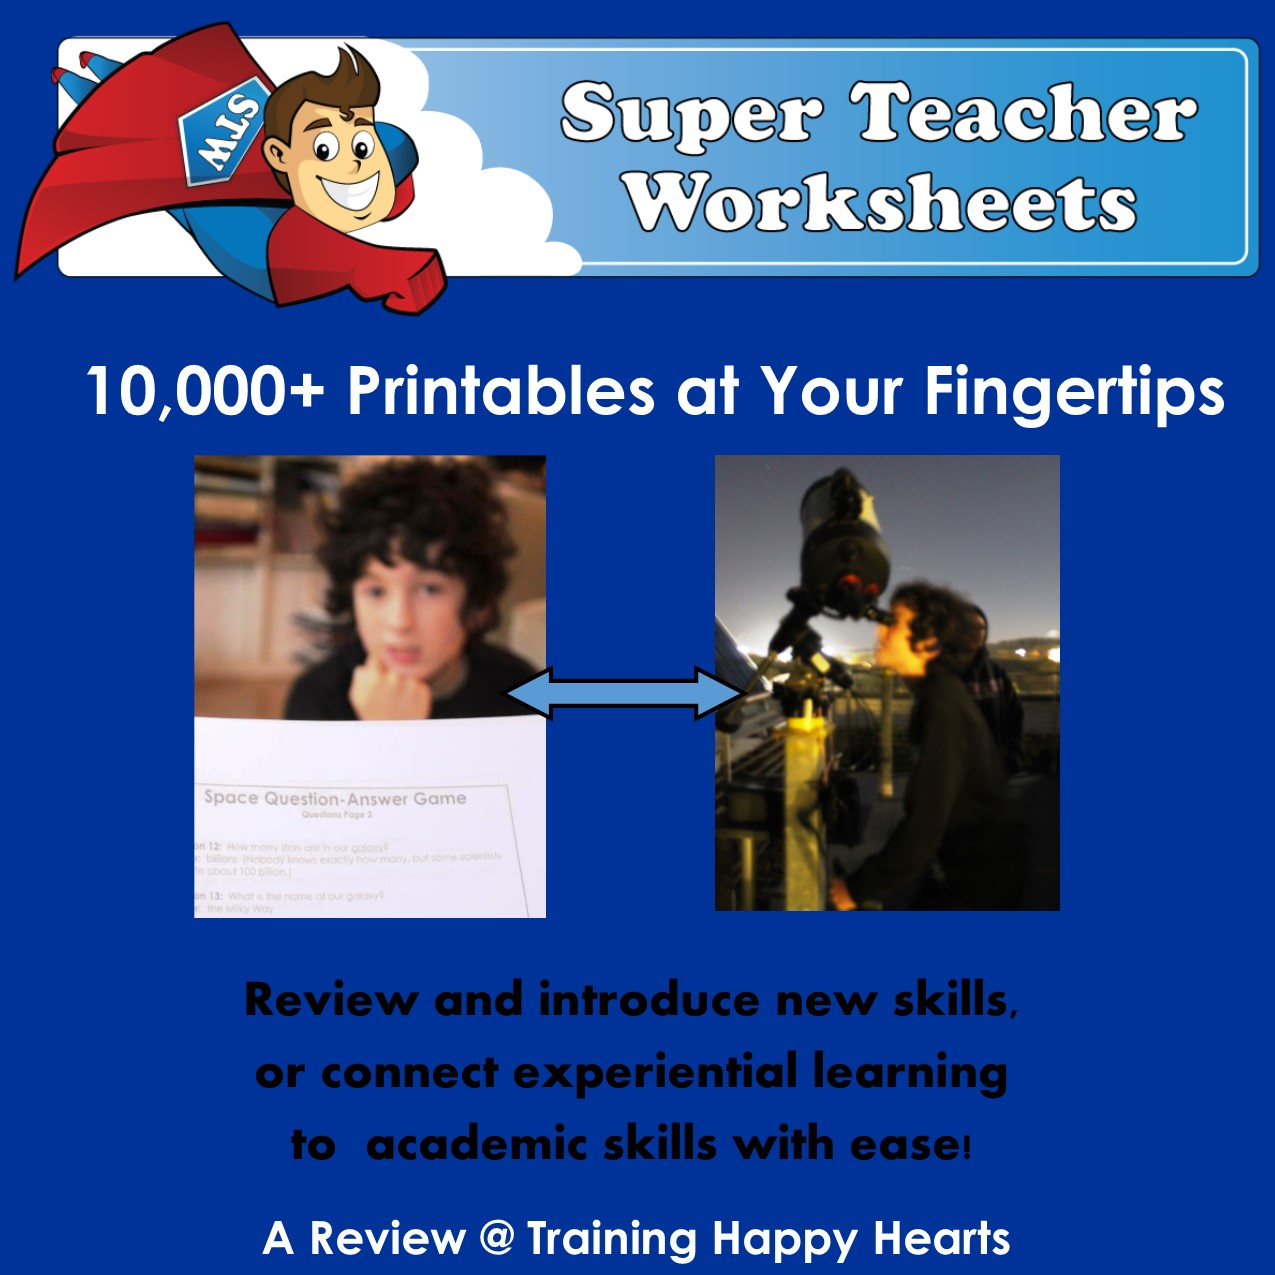 Super Teacher Worksheet Game